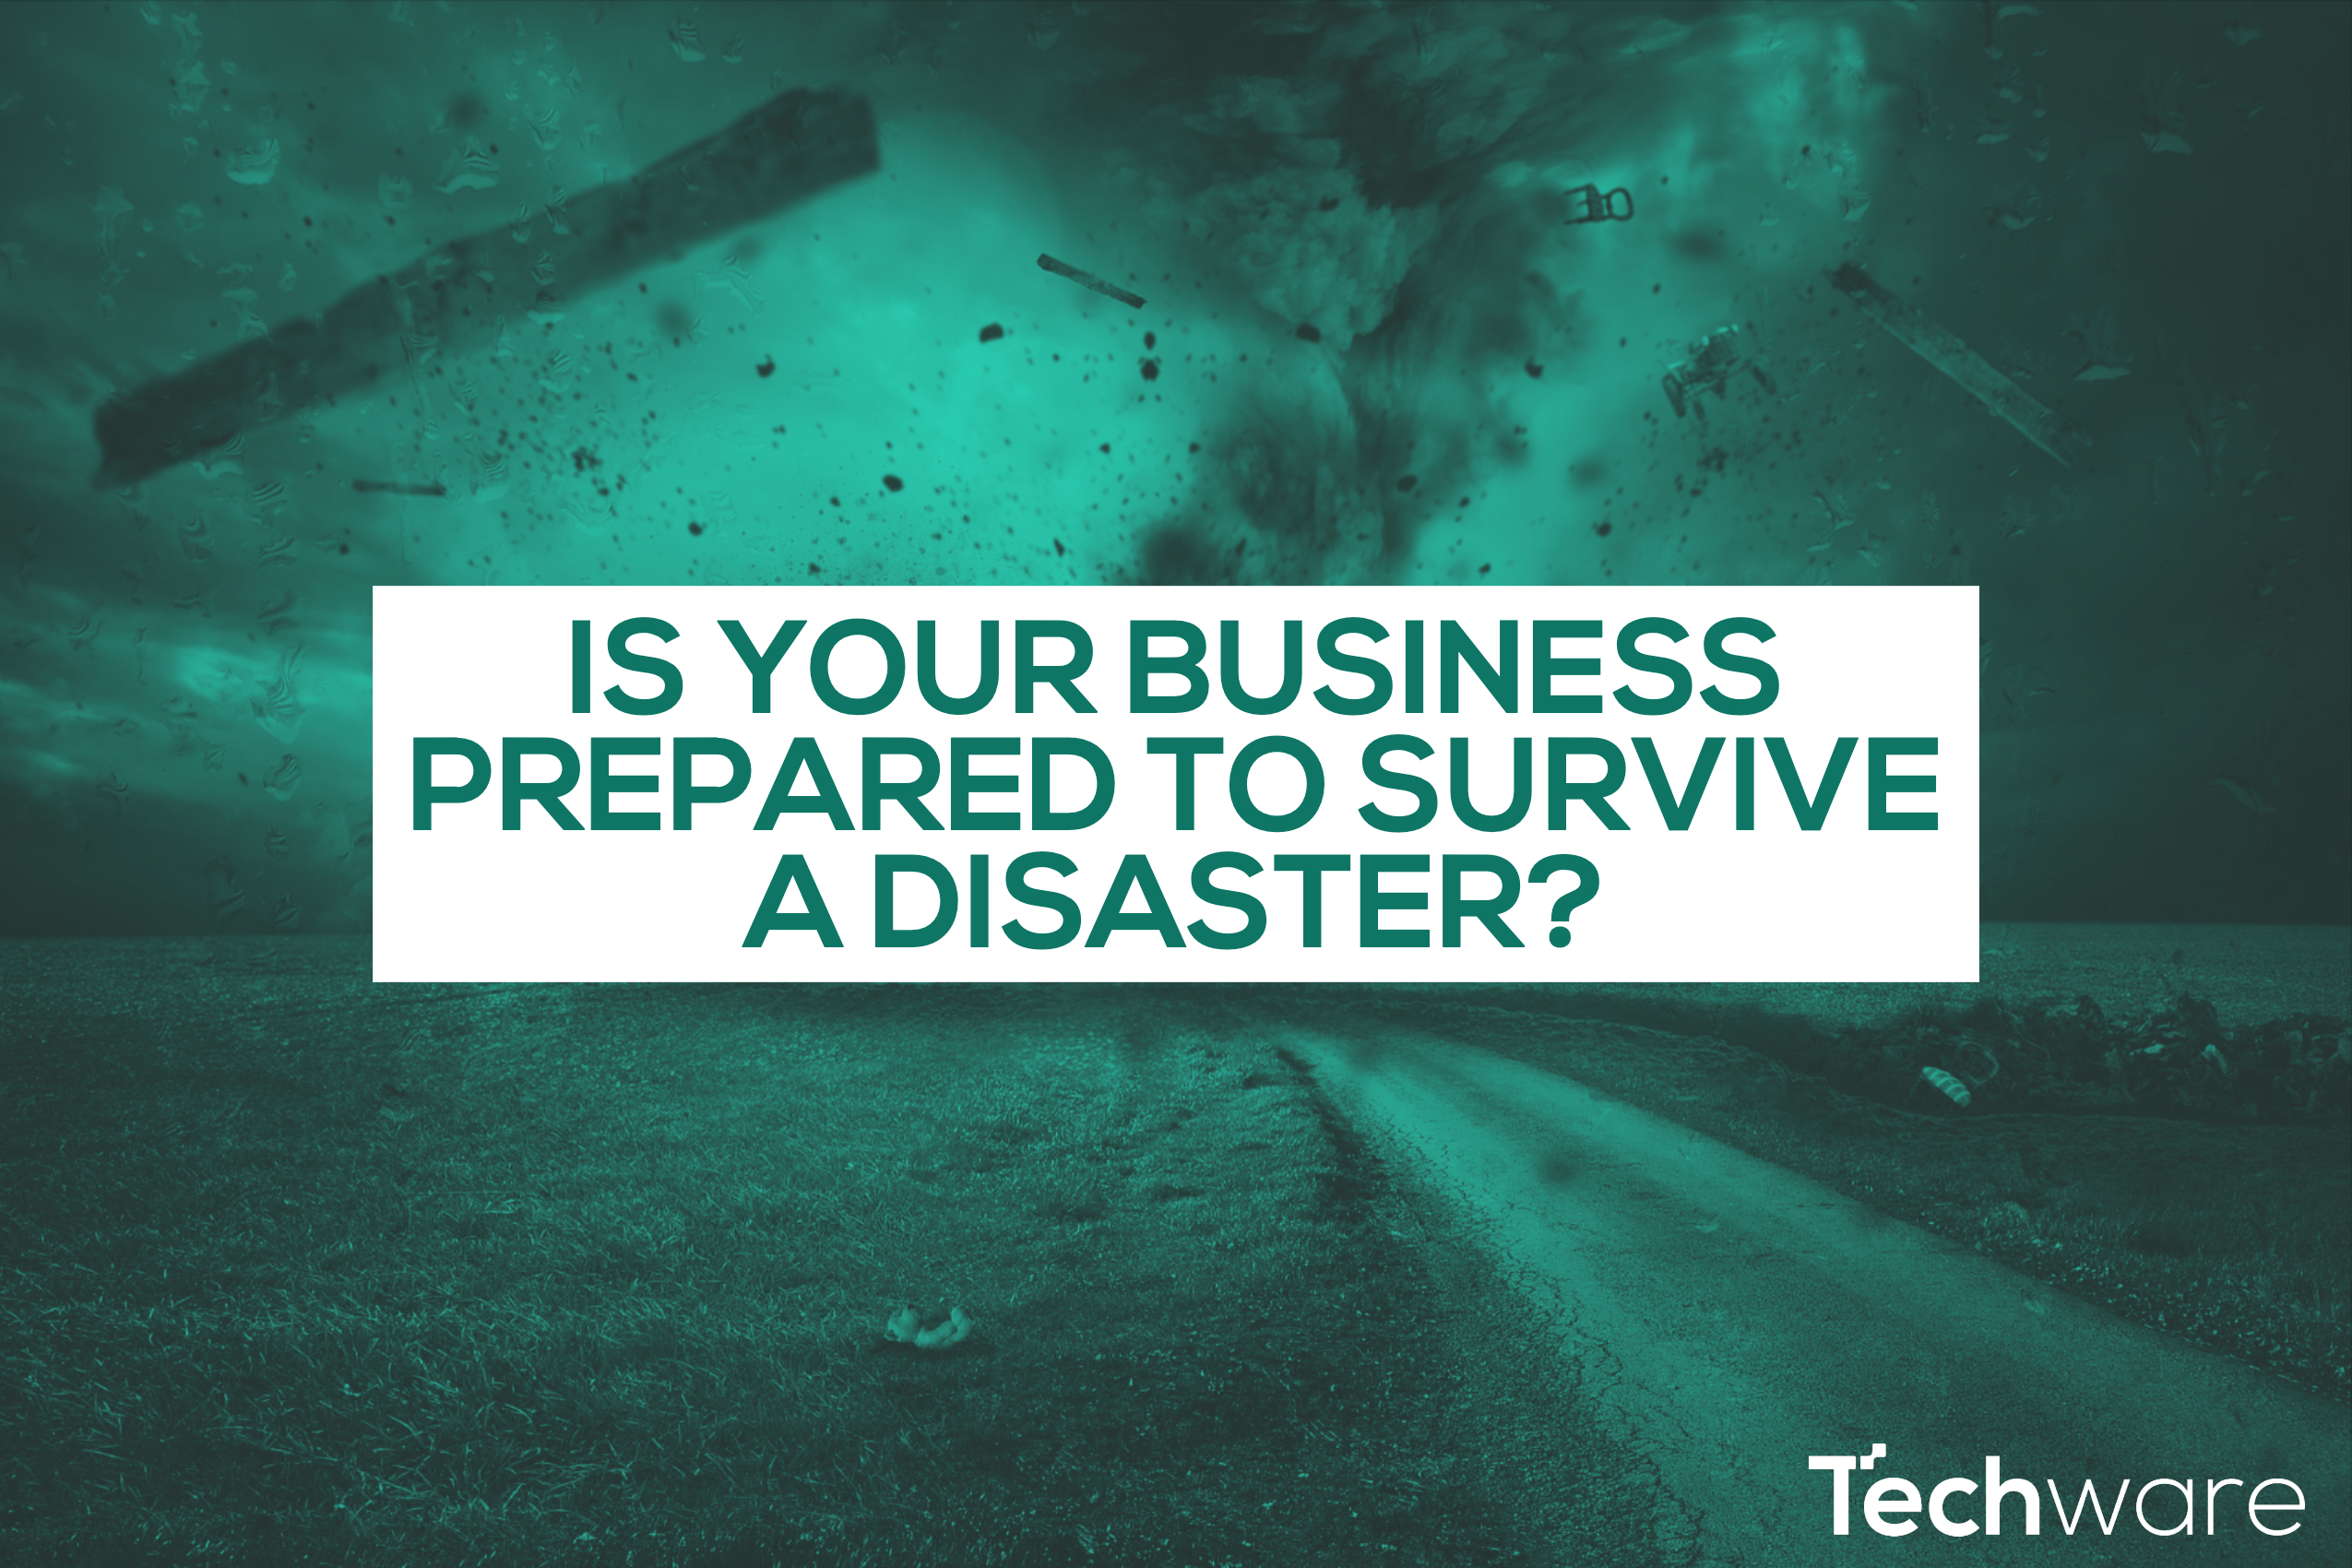 Is your business prepared to survive a disaster? Let's talk business continuity.